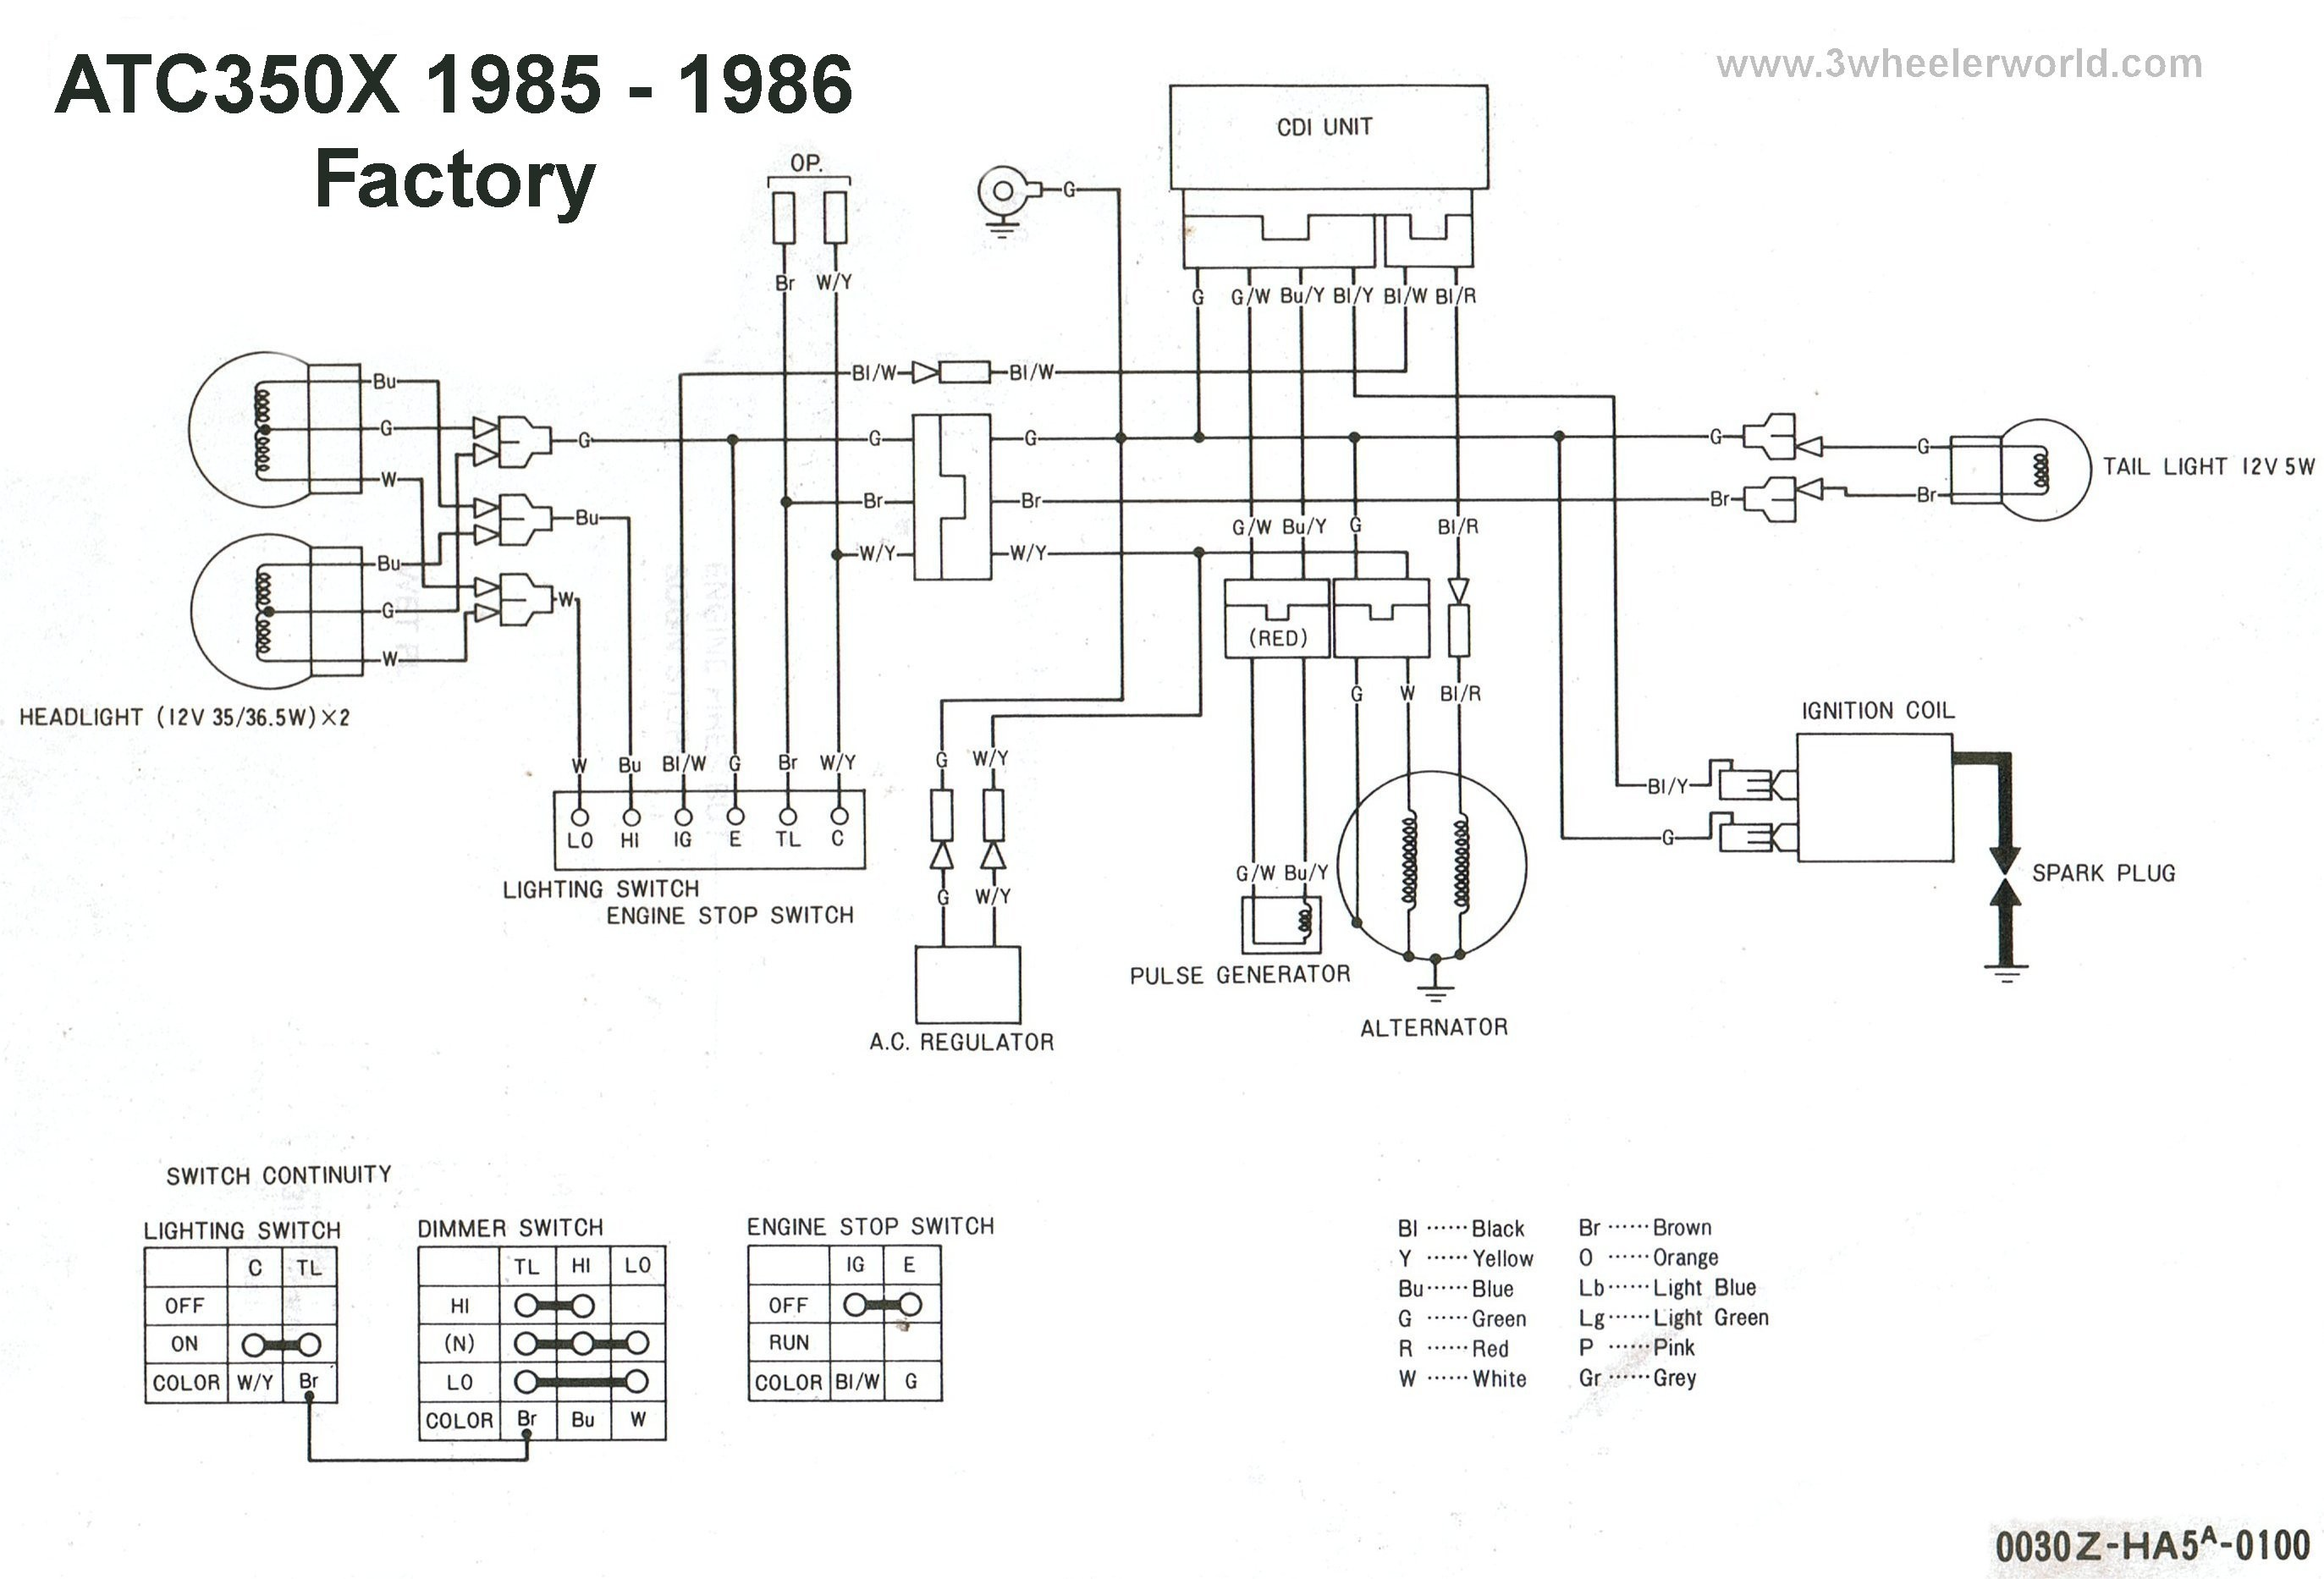 1986 honda goldwing wiring diagram automotive block diagram u2022 rh carwiringdiagram today